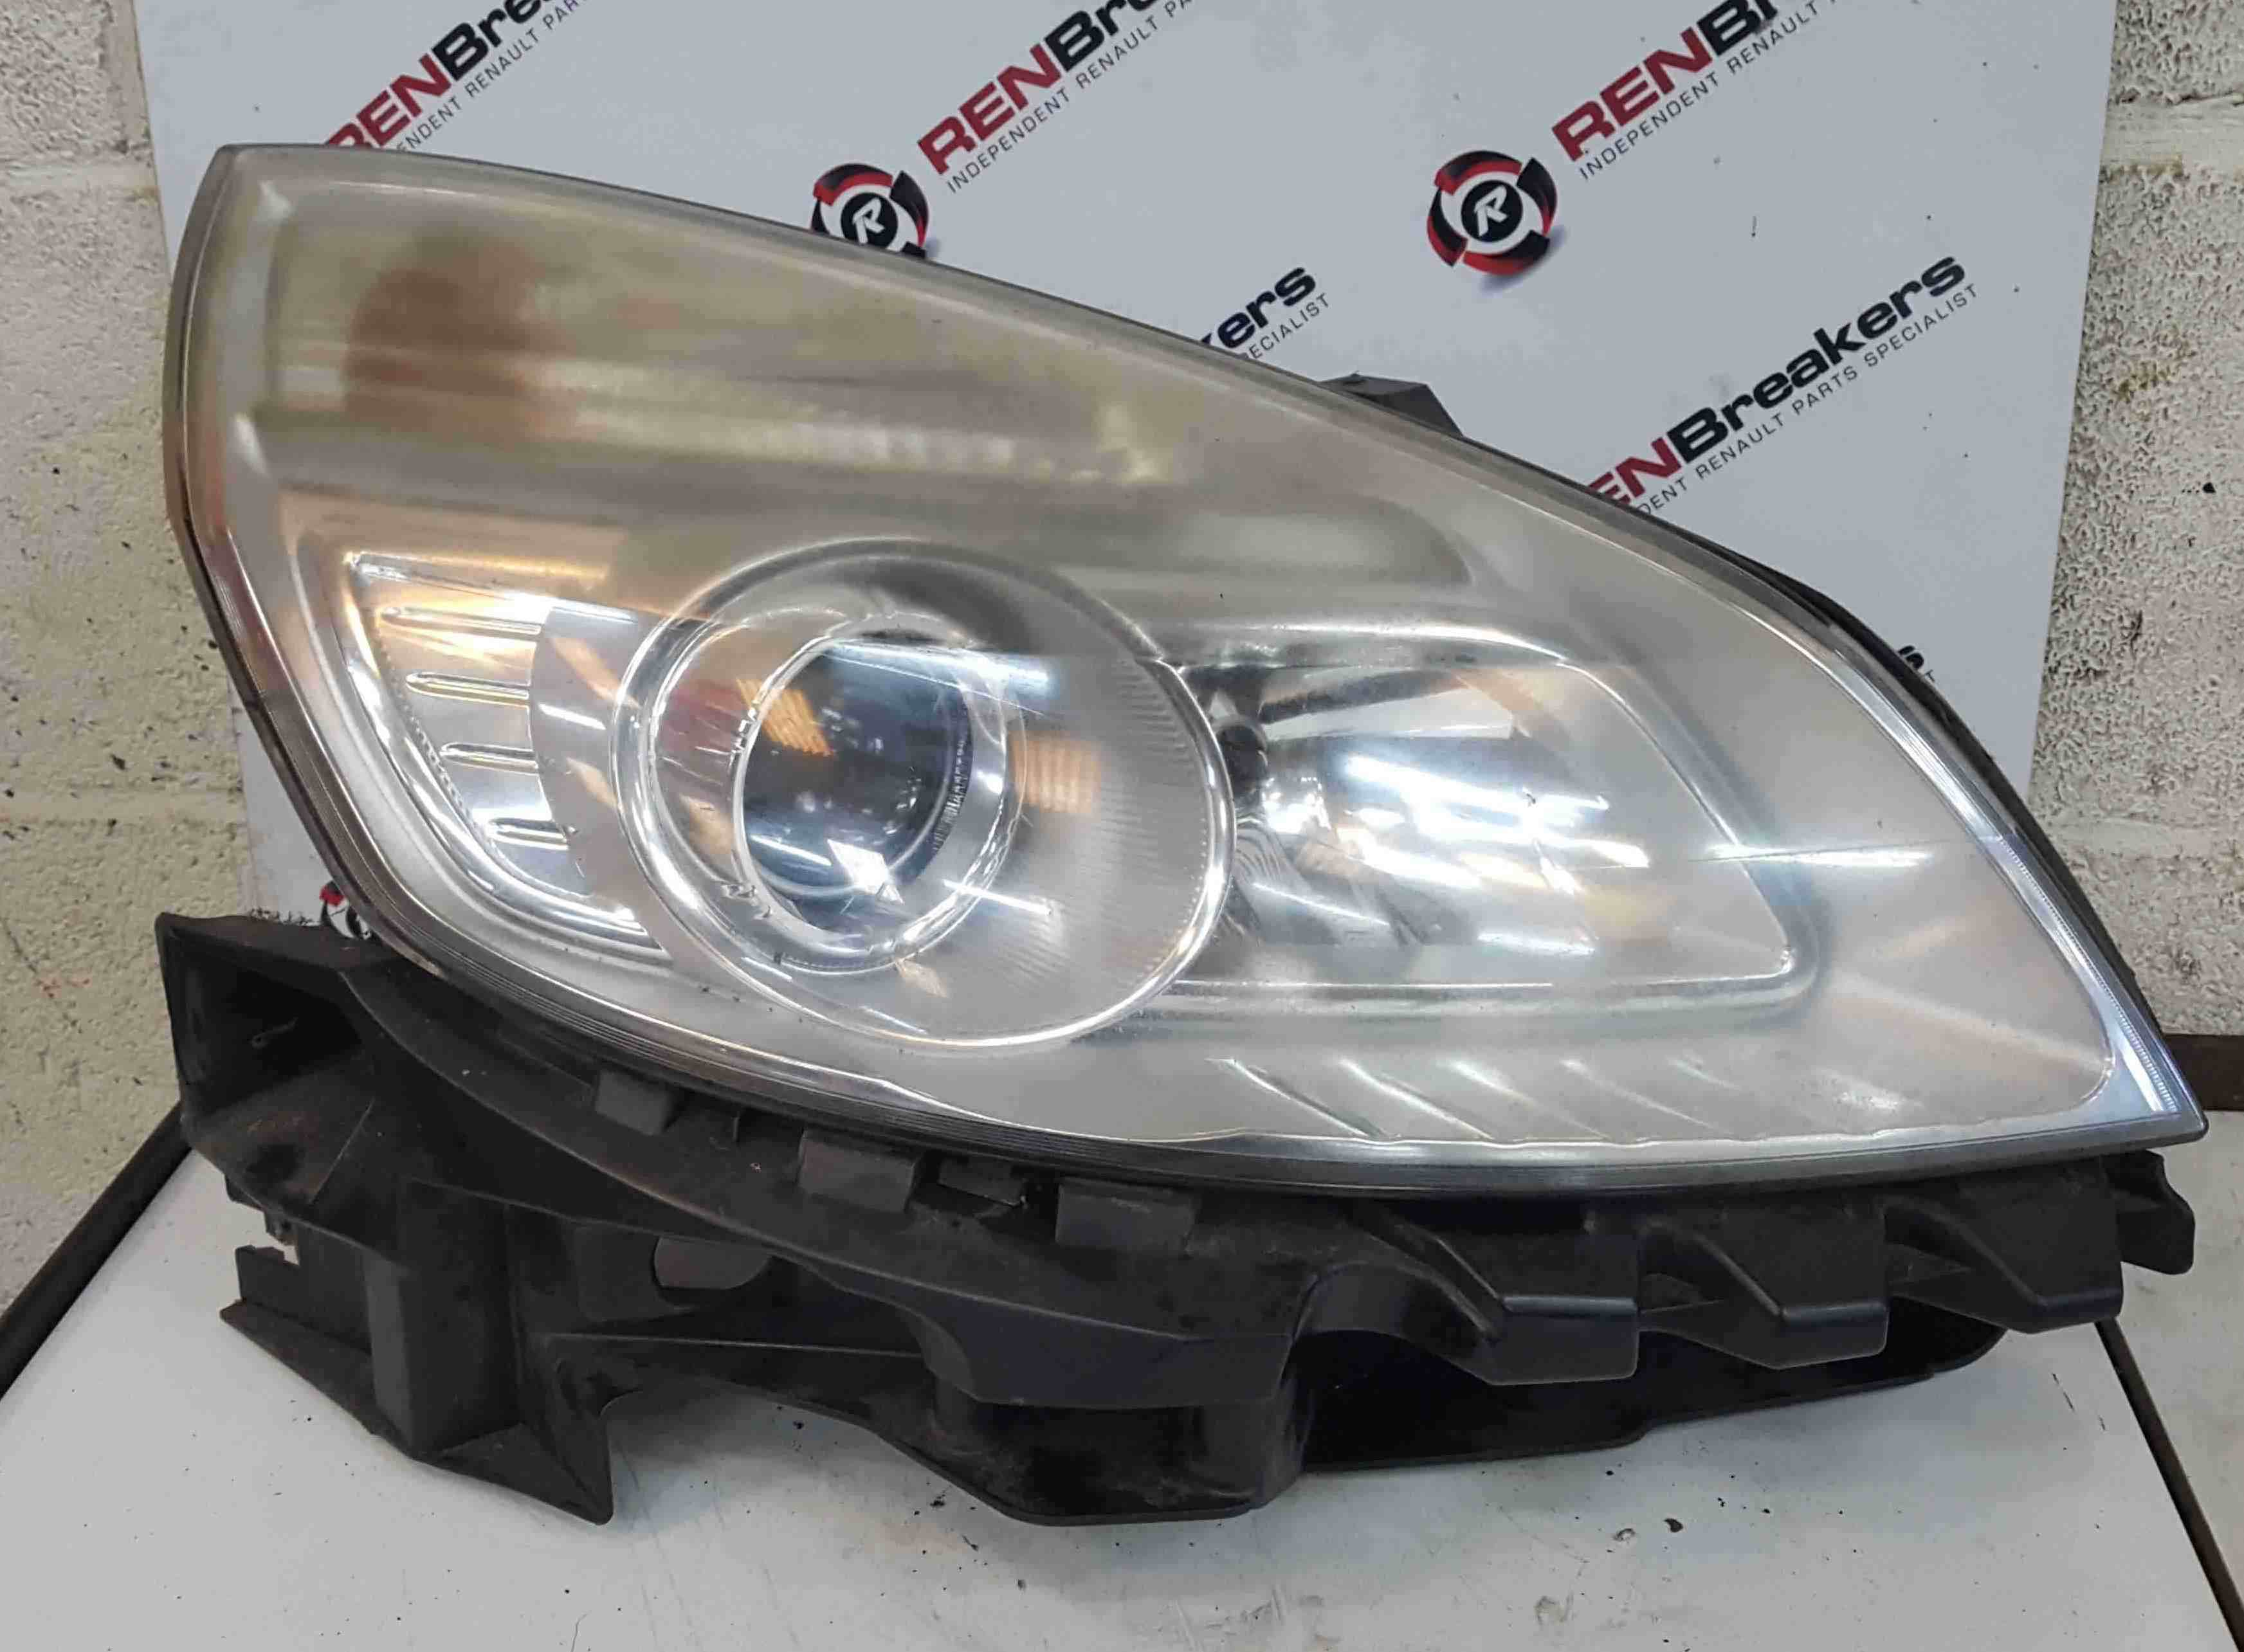 Renault Scenic 2006-2009 Drivers OSF Front Headlight Slightly Cloudy